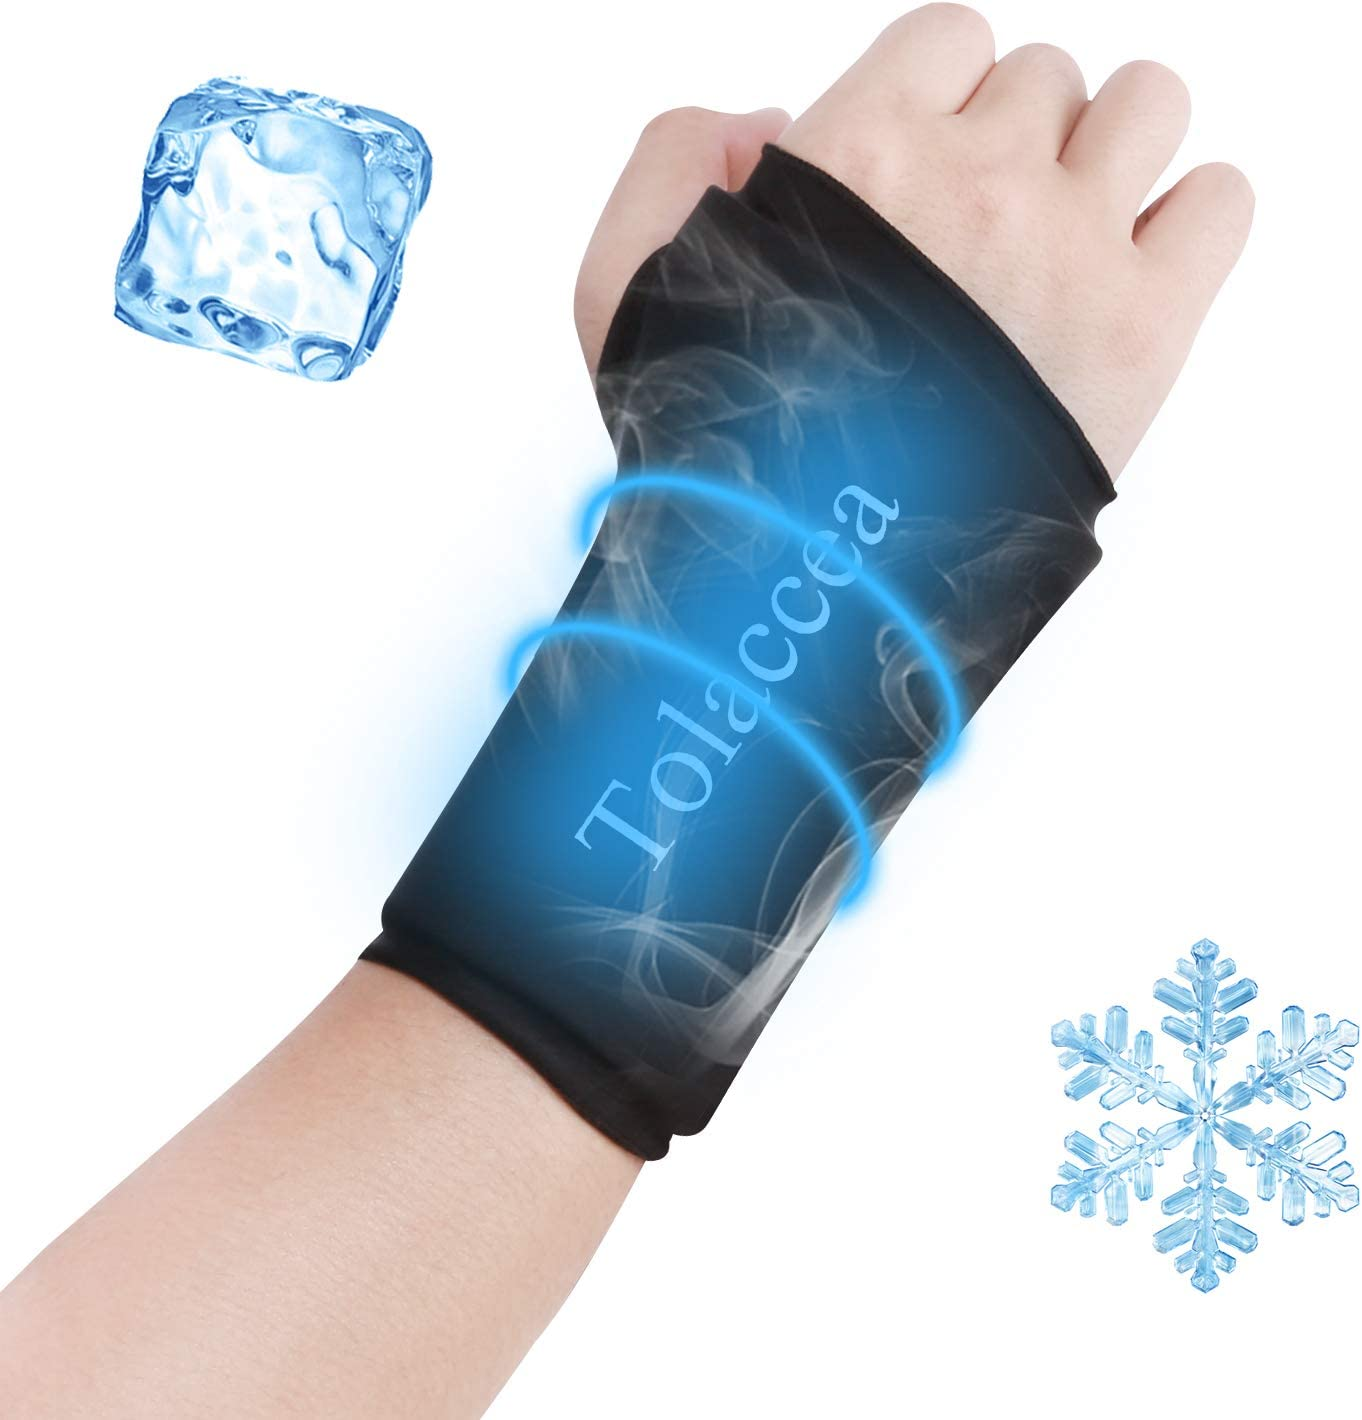 Tolaccea Wrist Ice Pack Wrap & Heating Pad Microwavable Hot & Cold Therapy Wrist Brace for Pain Relief of Carpal Tunnel, Rheumatoid Arthritis, Tendonitis, Sports Injuries, Swelling, Bruises & Sprains